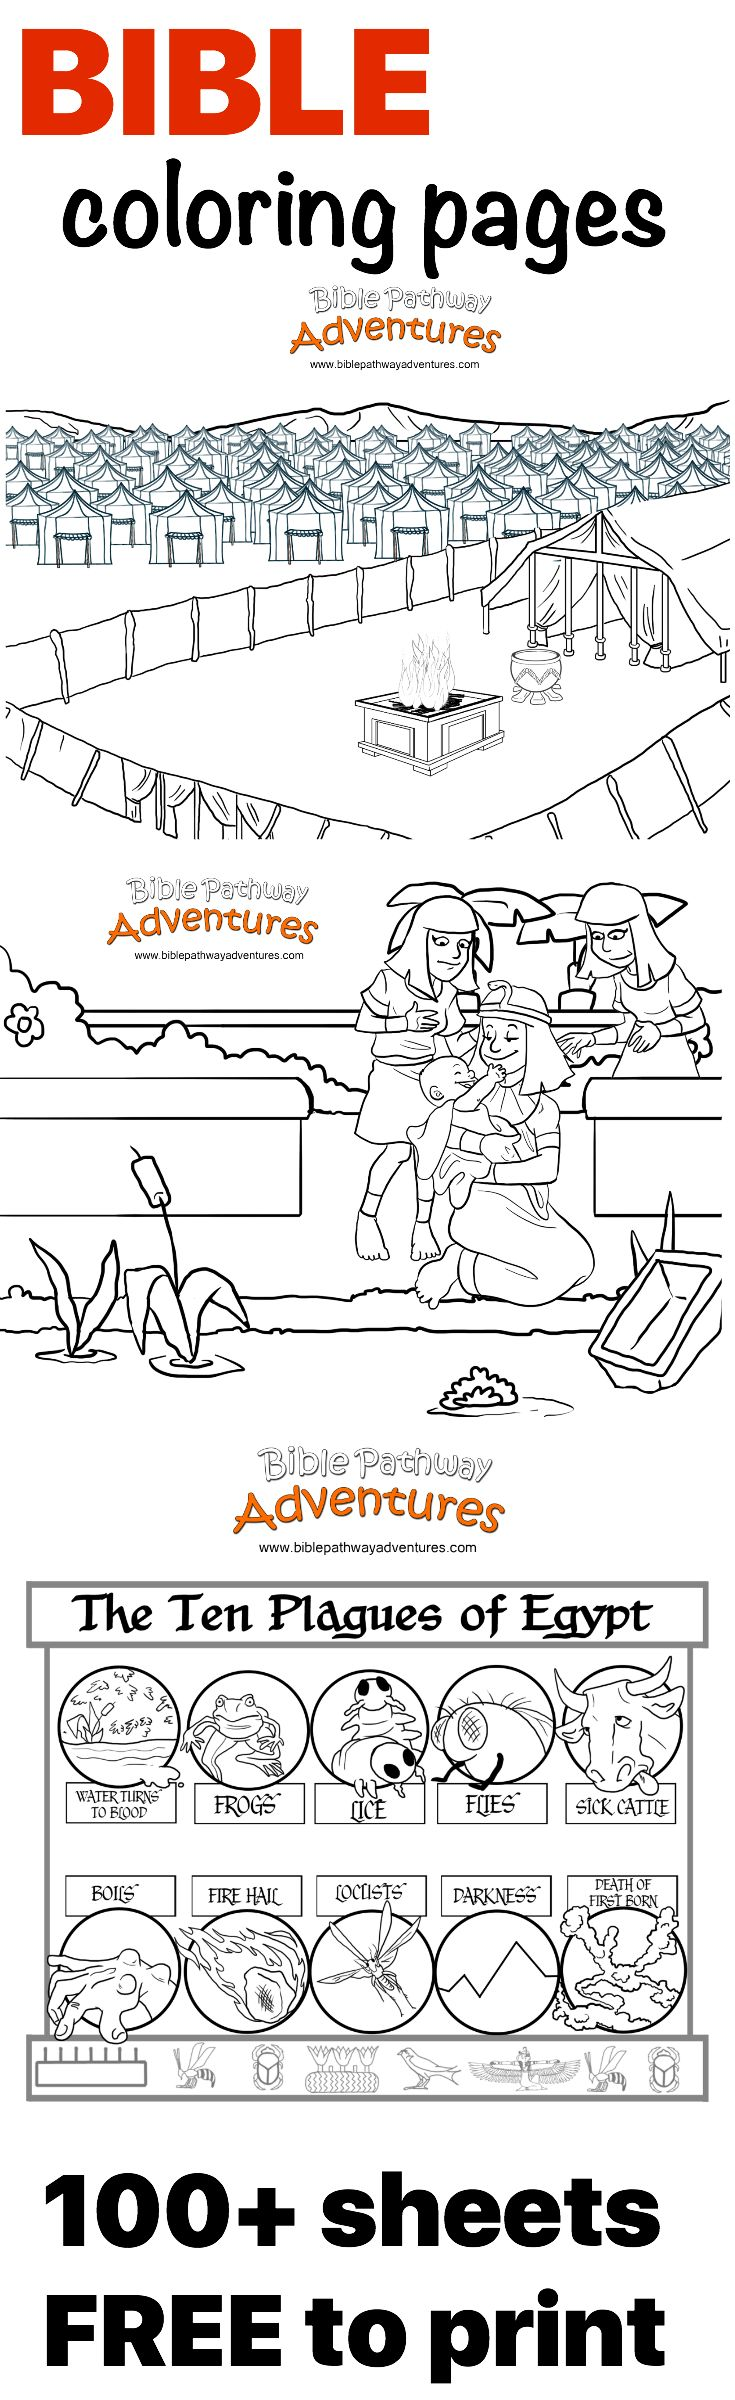 Worksheets Bible Worksheets For Preschoolers free bible activities for kids worksheets and bible